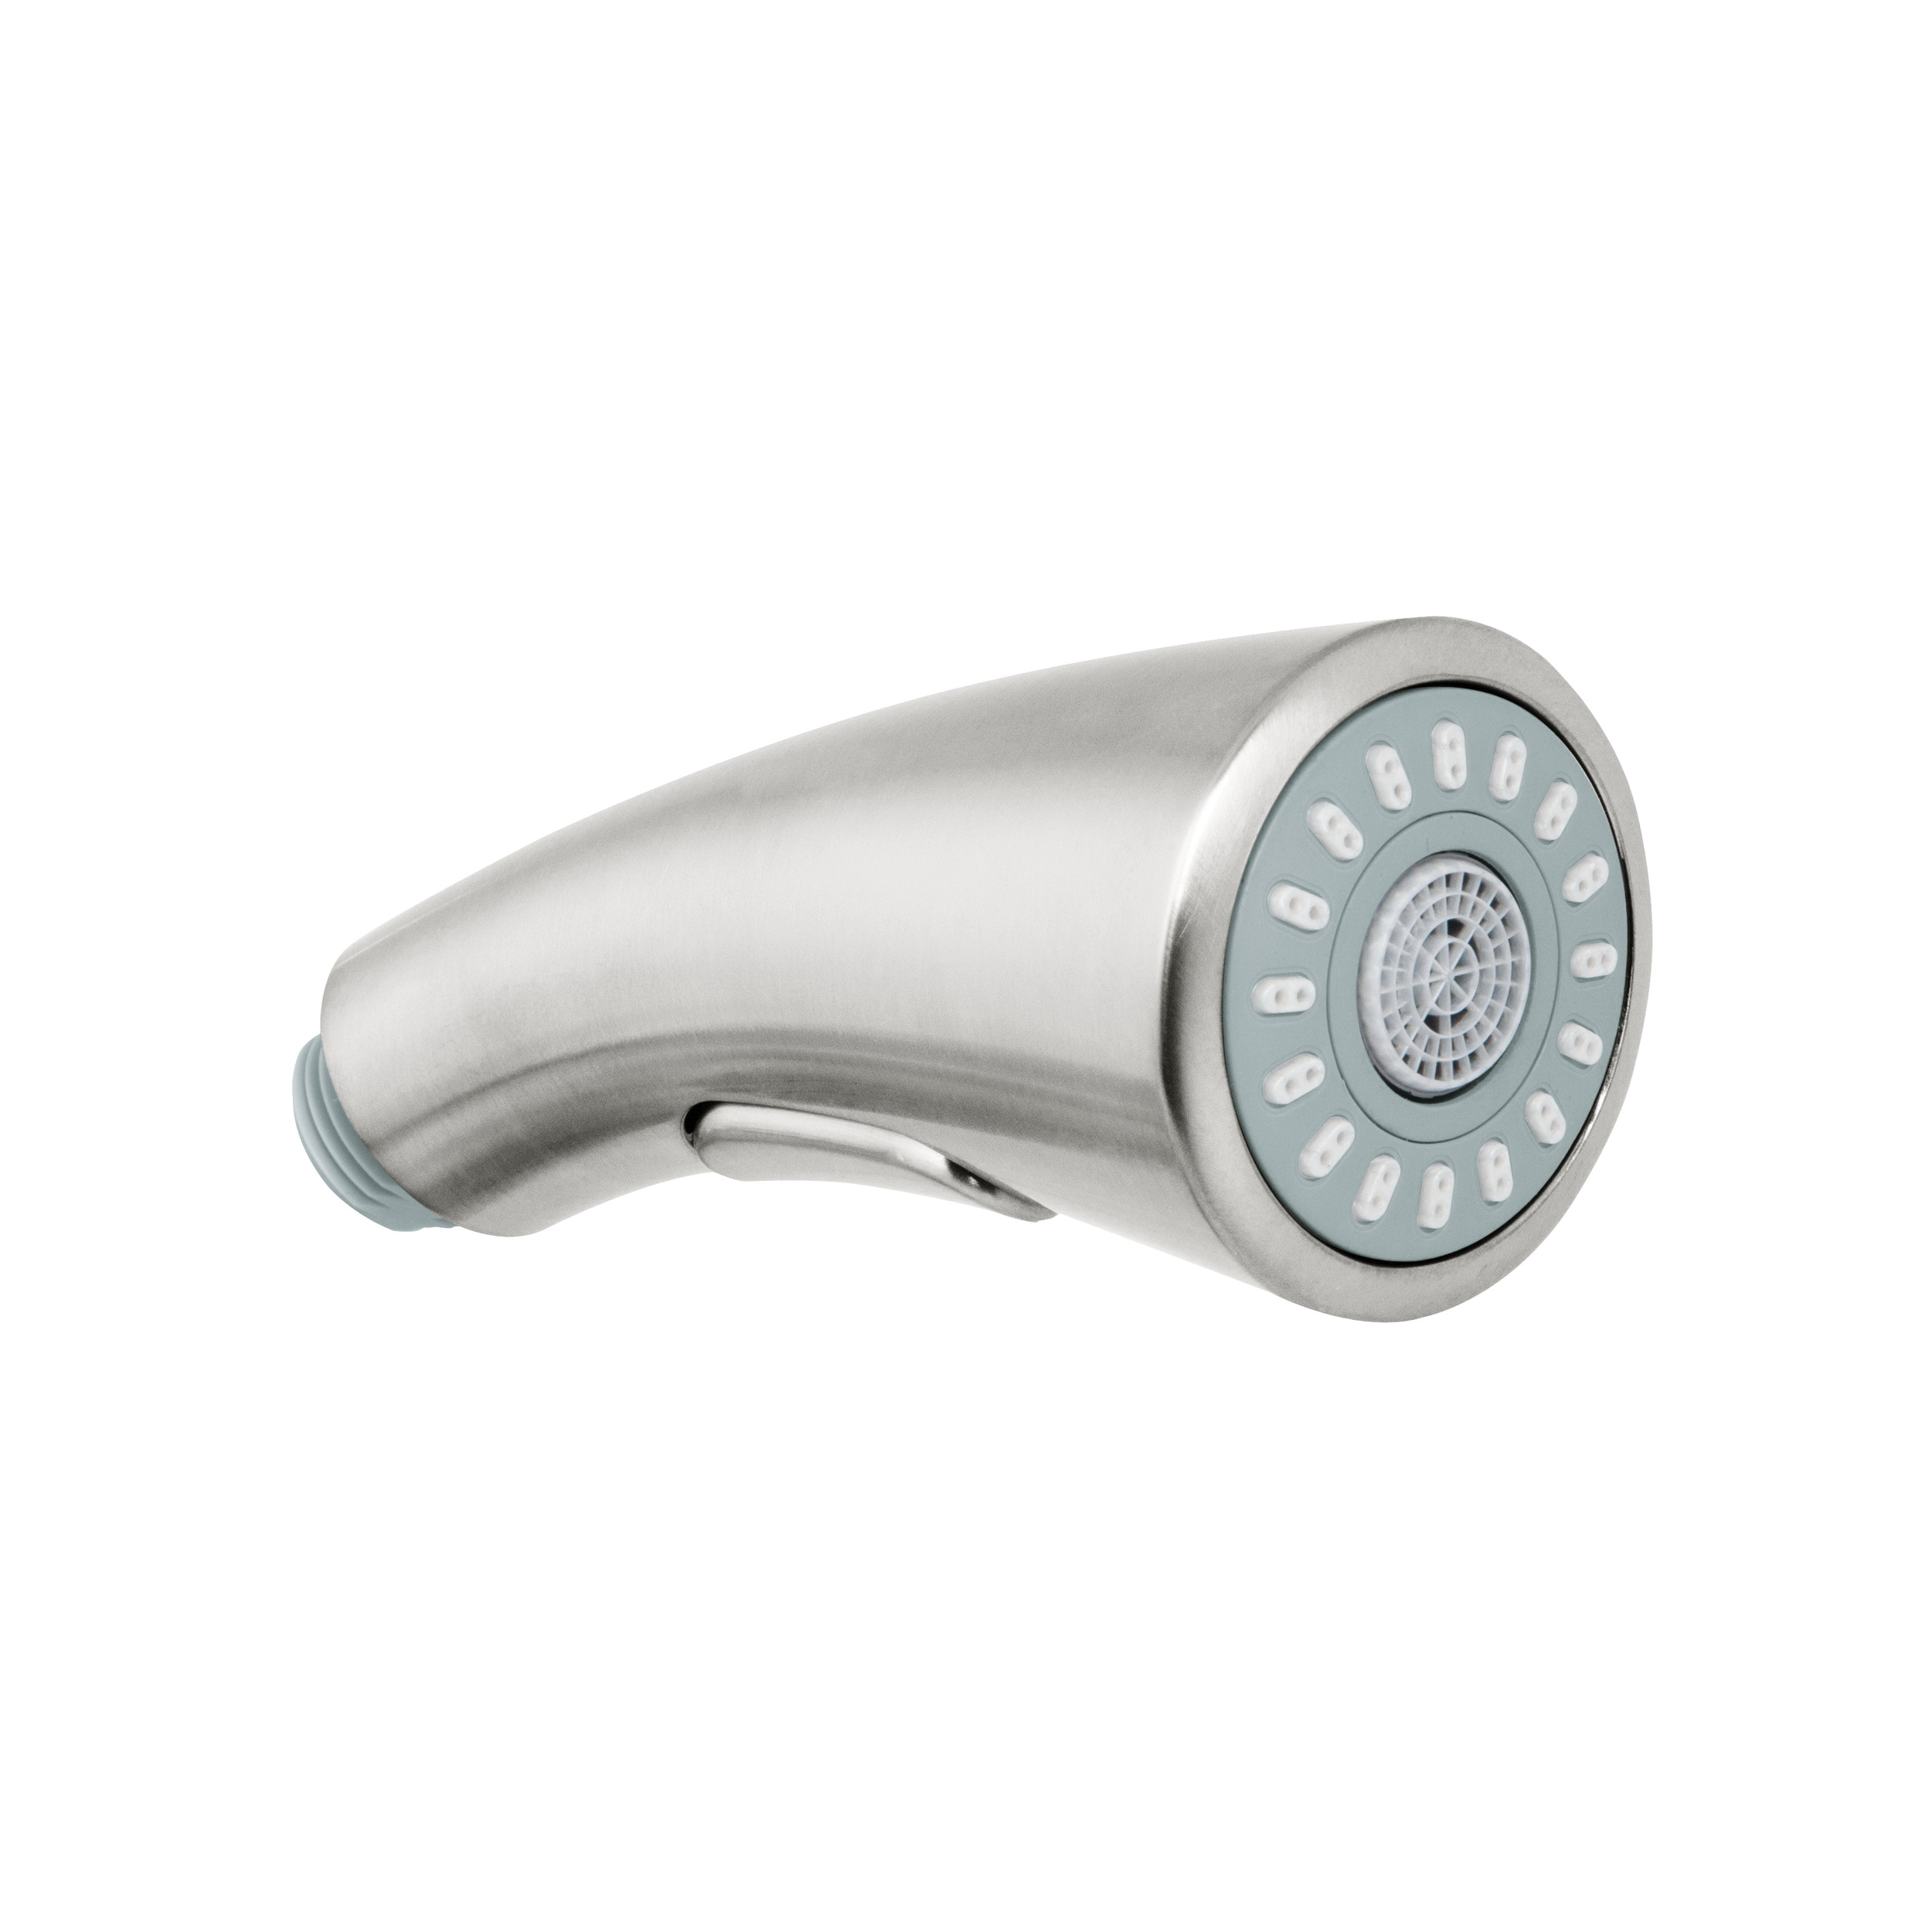 GROHE 46875ND0 Pull-Out Spray, For Use With LadyLux™ Cafe and Bridgeford Faucet, SuperSteel/Light Gray Head, Import